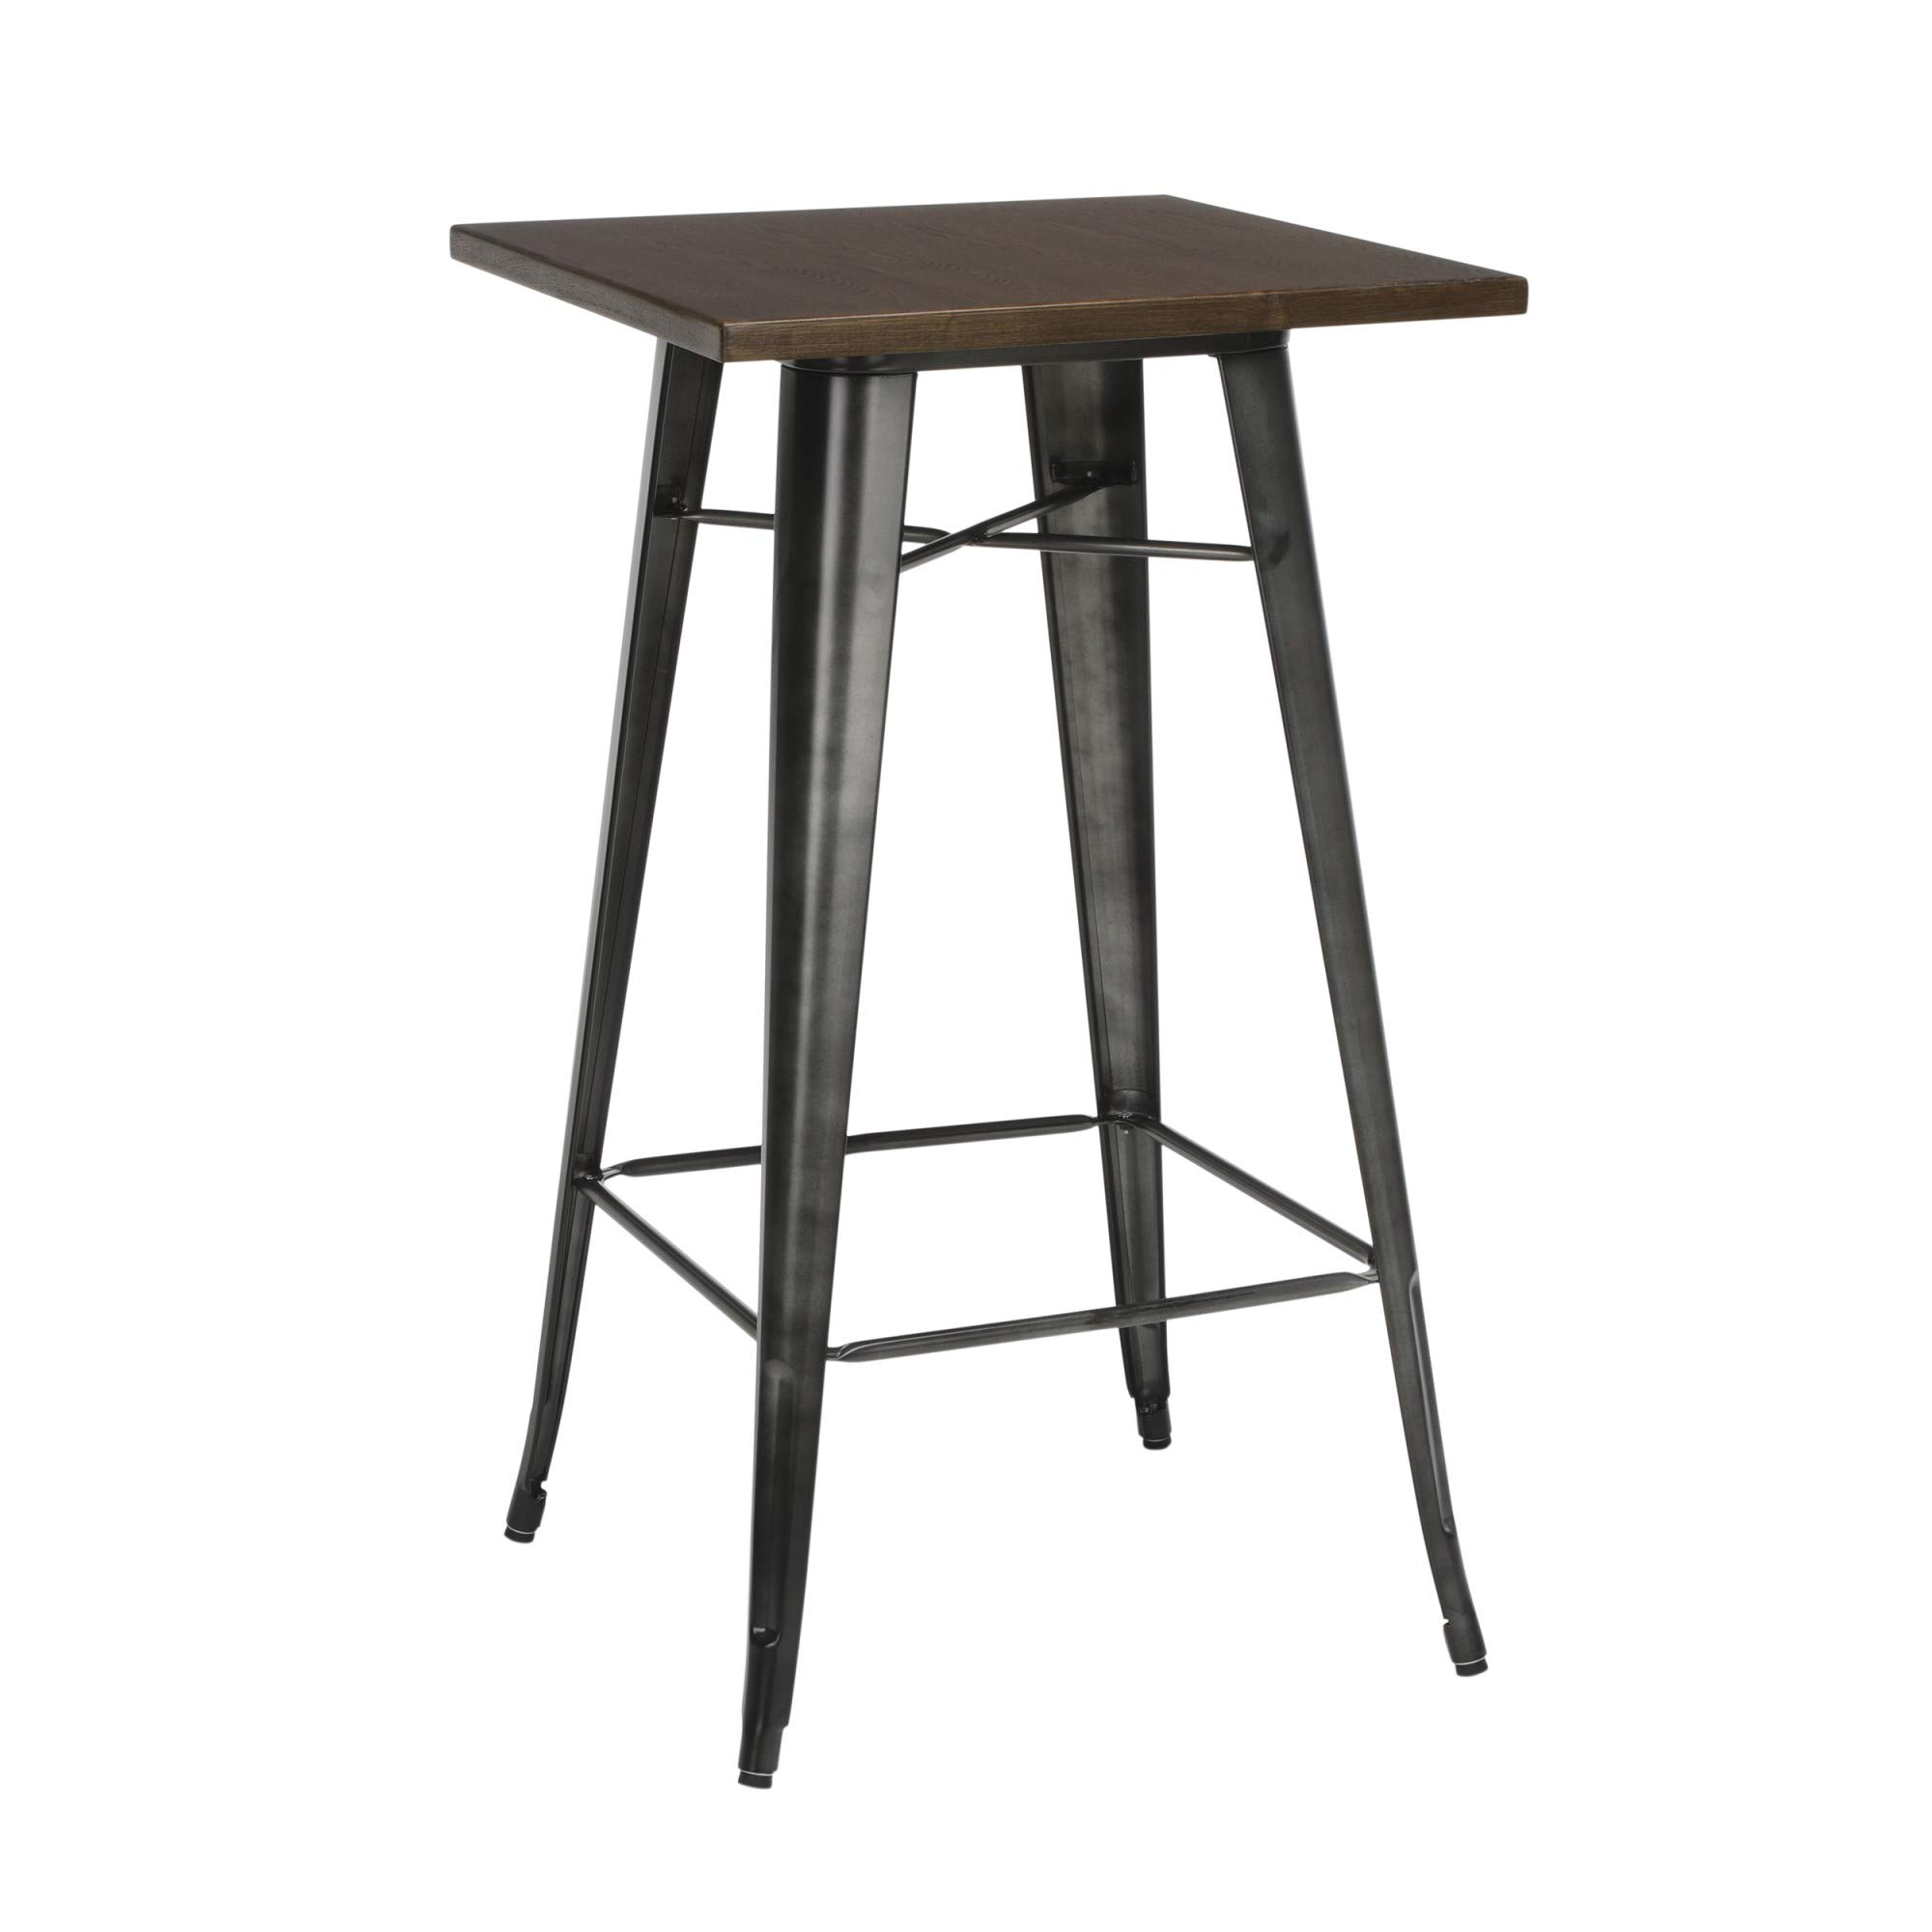 OFM 161 Collection Industrial Modern 24'' Square Bar Table with Footring, Wooden Tabletop with Galvanized Steel Frame, in Gunmetal/Walnut by OFM